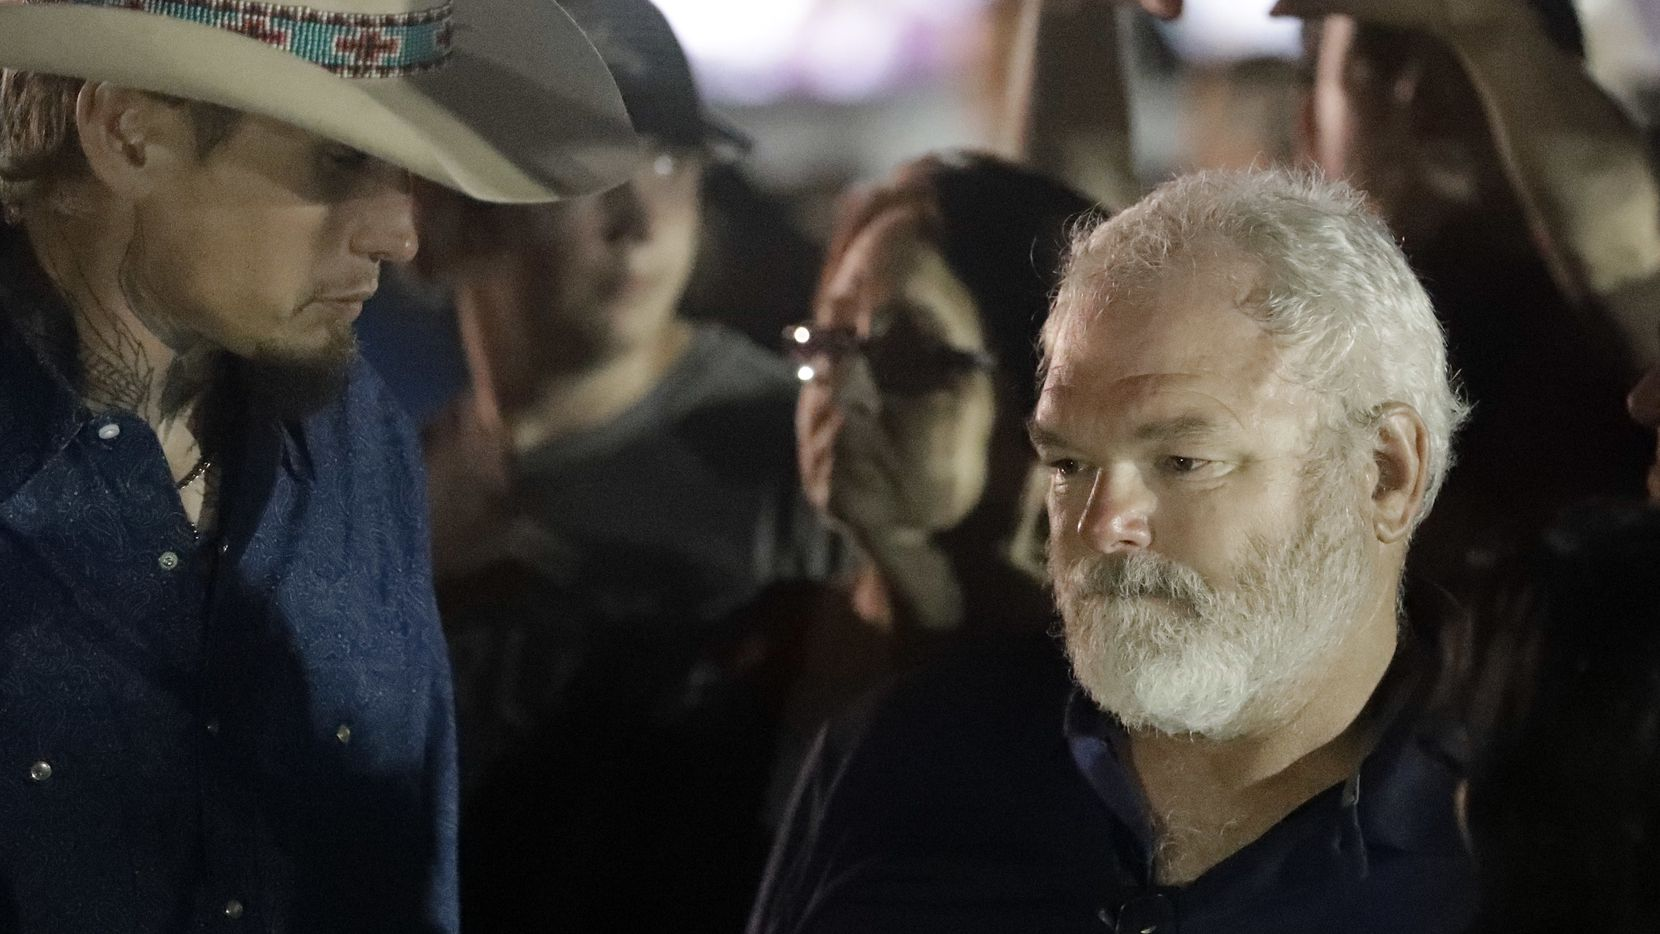 Stephen Willeford, right and Johnnie Langendorff, left, attend a vigil for the victims of the First Baptist Church shooting Monday, Nov. 6, 2017, in Sutherland Springs, Texas.